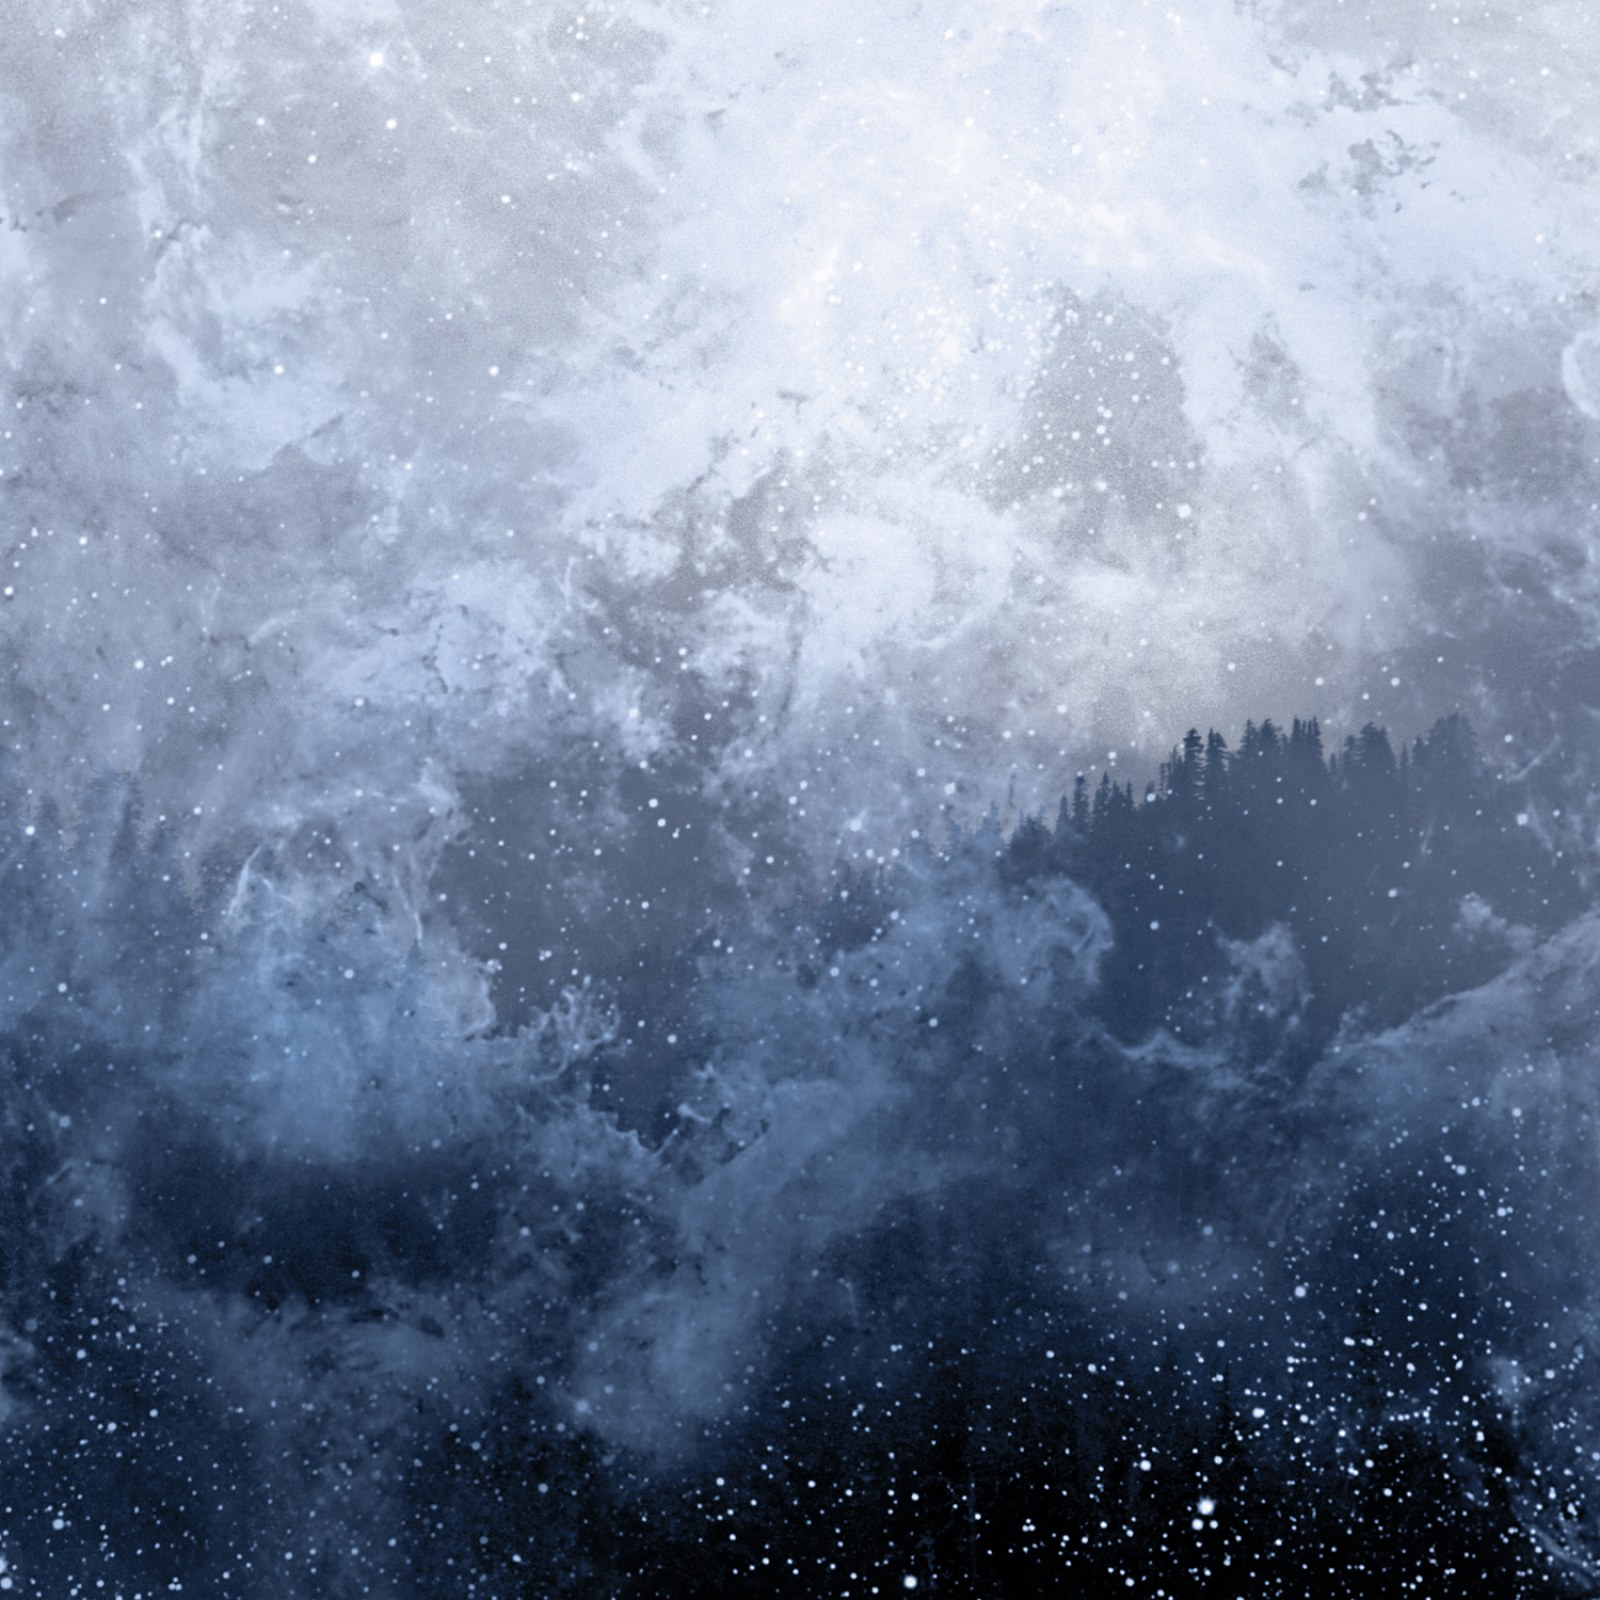 Review for Wolves in the Throne Room - Celestite